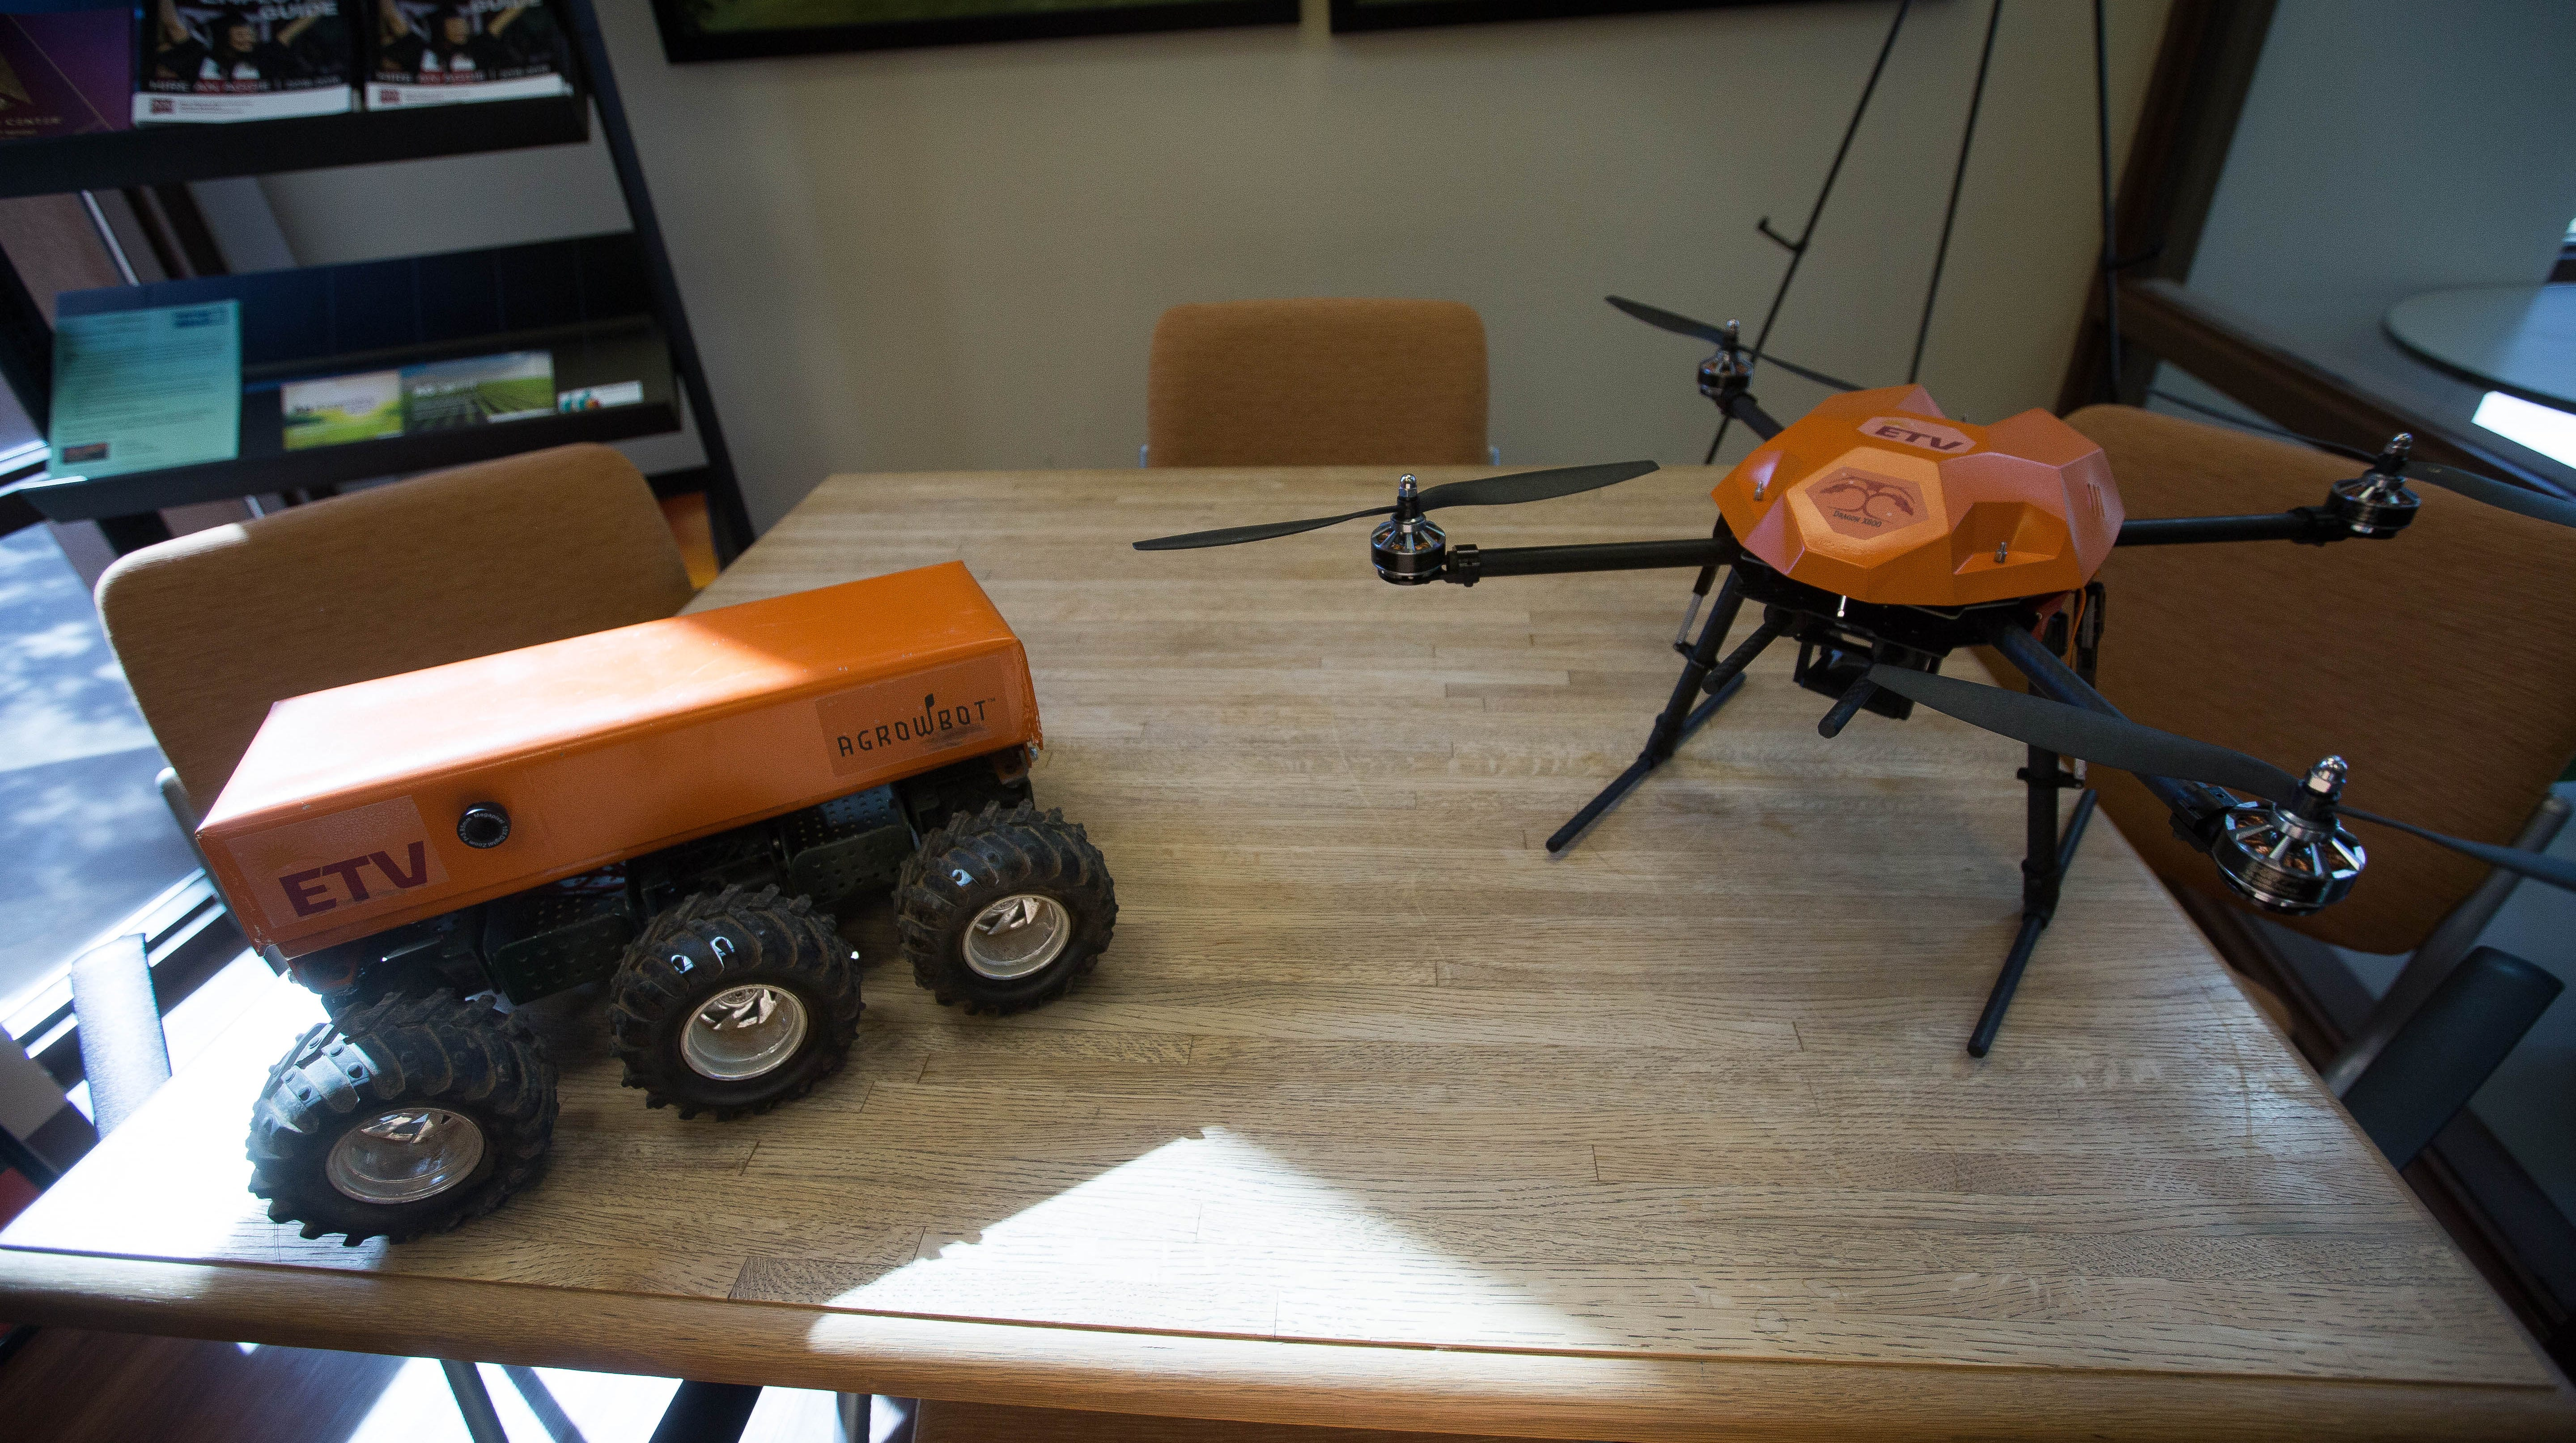 A ground bot and a drone programed with GreenAI, an Artificial Intelligence  system they build, which is used for collecting data around fields for farmers to be better informed. Wednesday November 14, 2018.